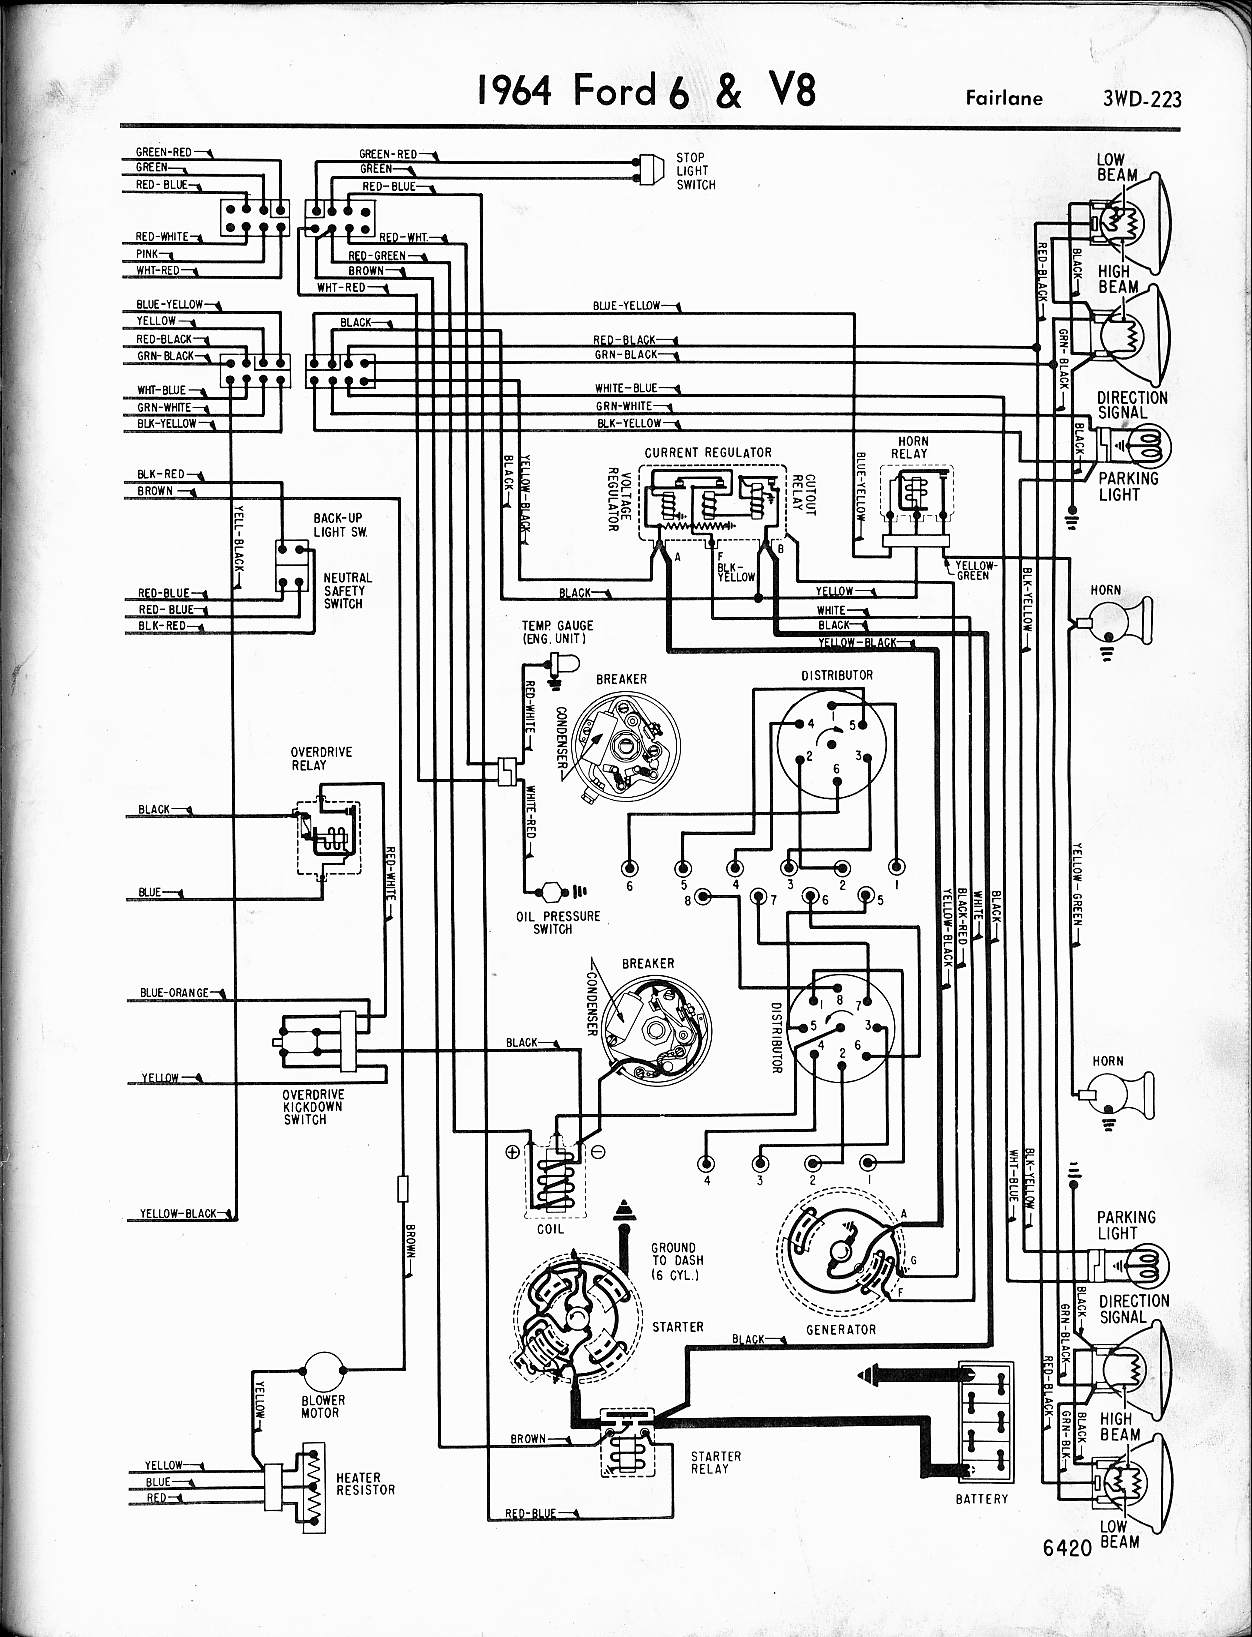 MWire5765 223 57 65 ford wiring diagrams Ford E 350 Wiring Diagrams at fashall.co